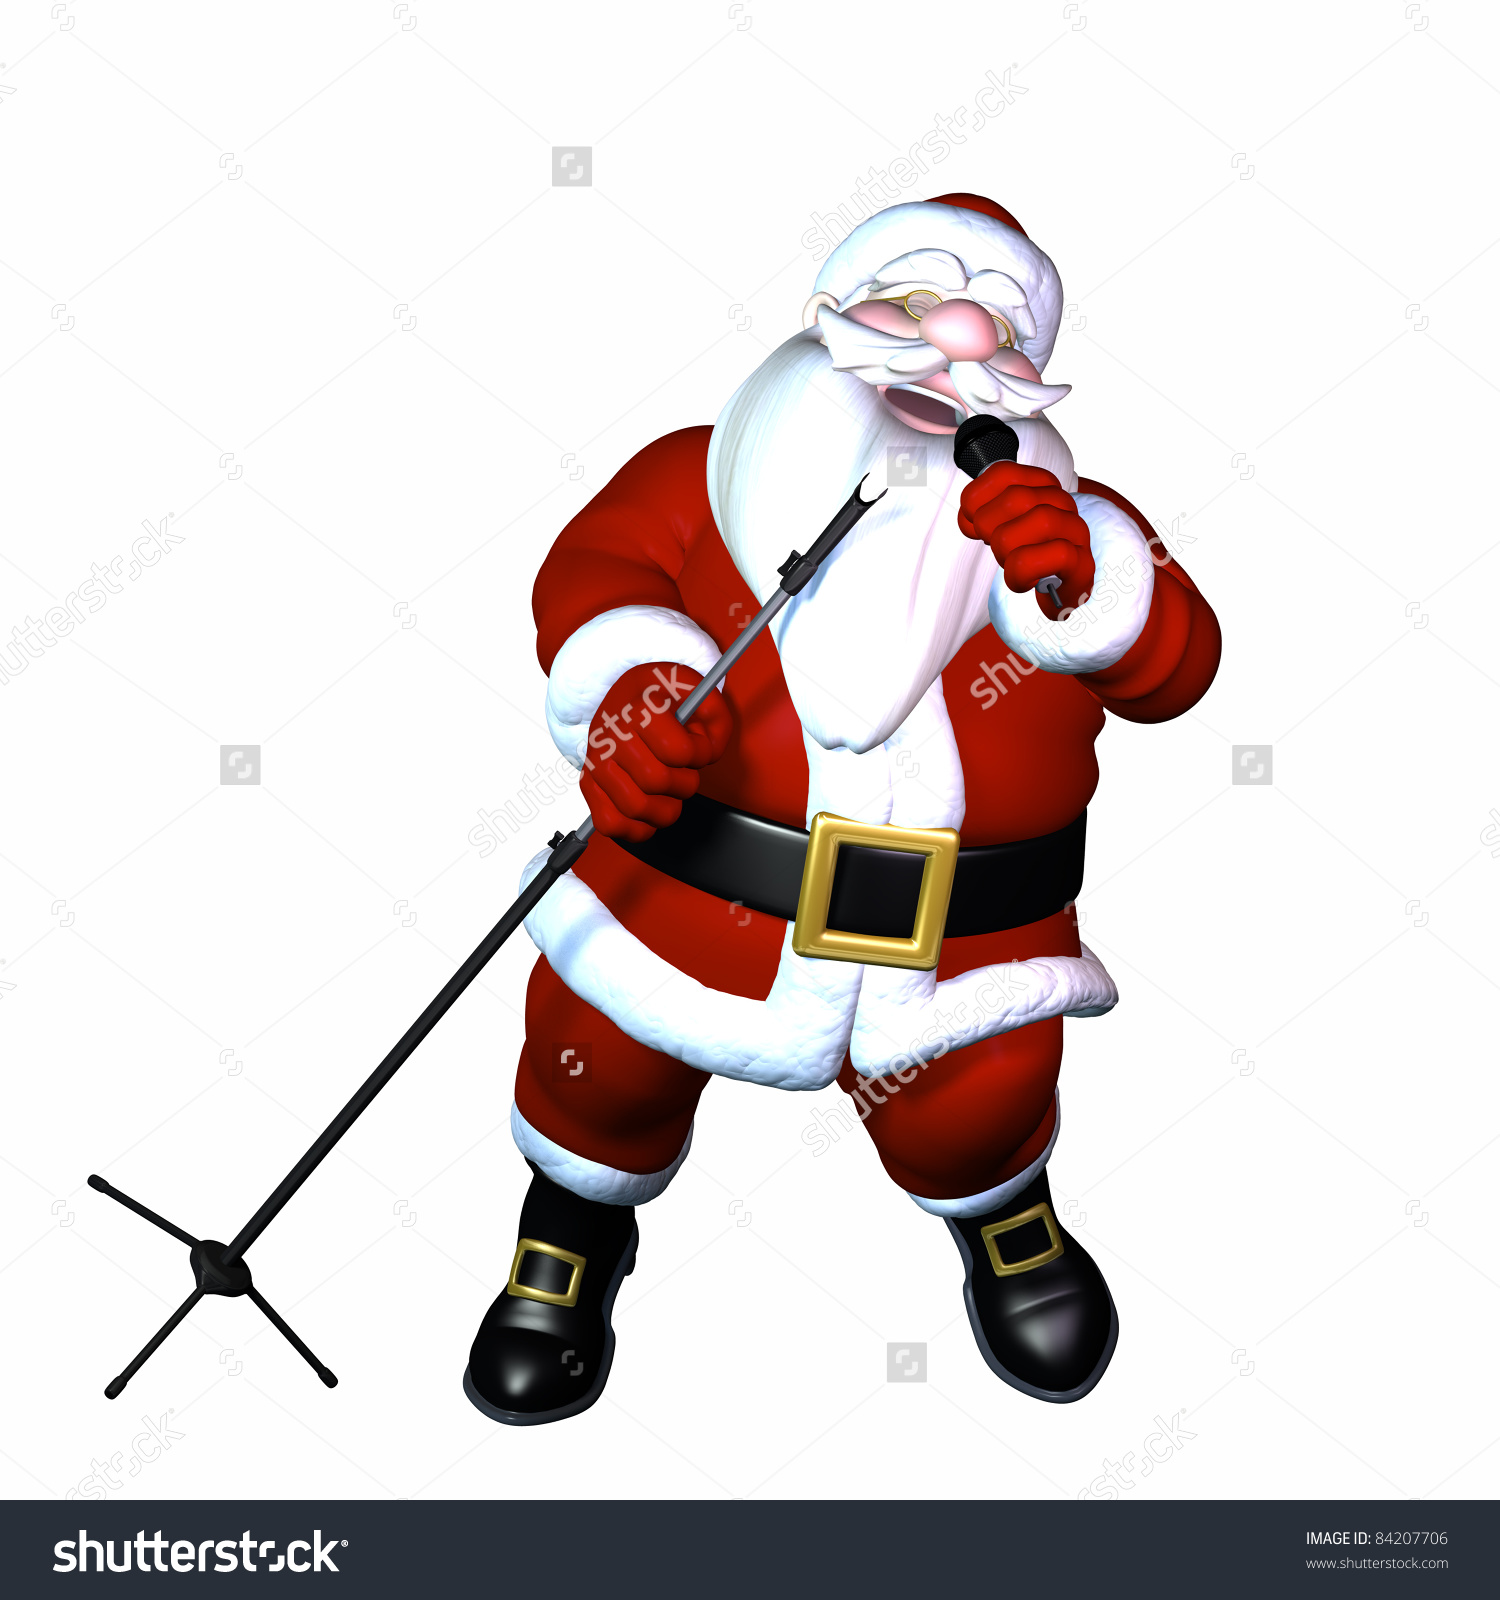 Santa Singing With His Eyes Closed, Holding A Wireless Microphone.